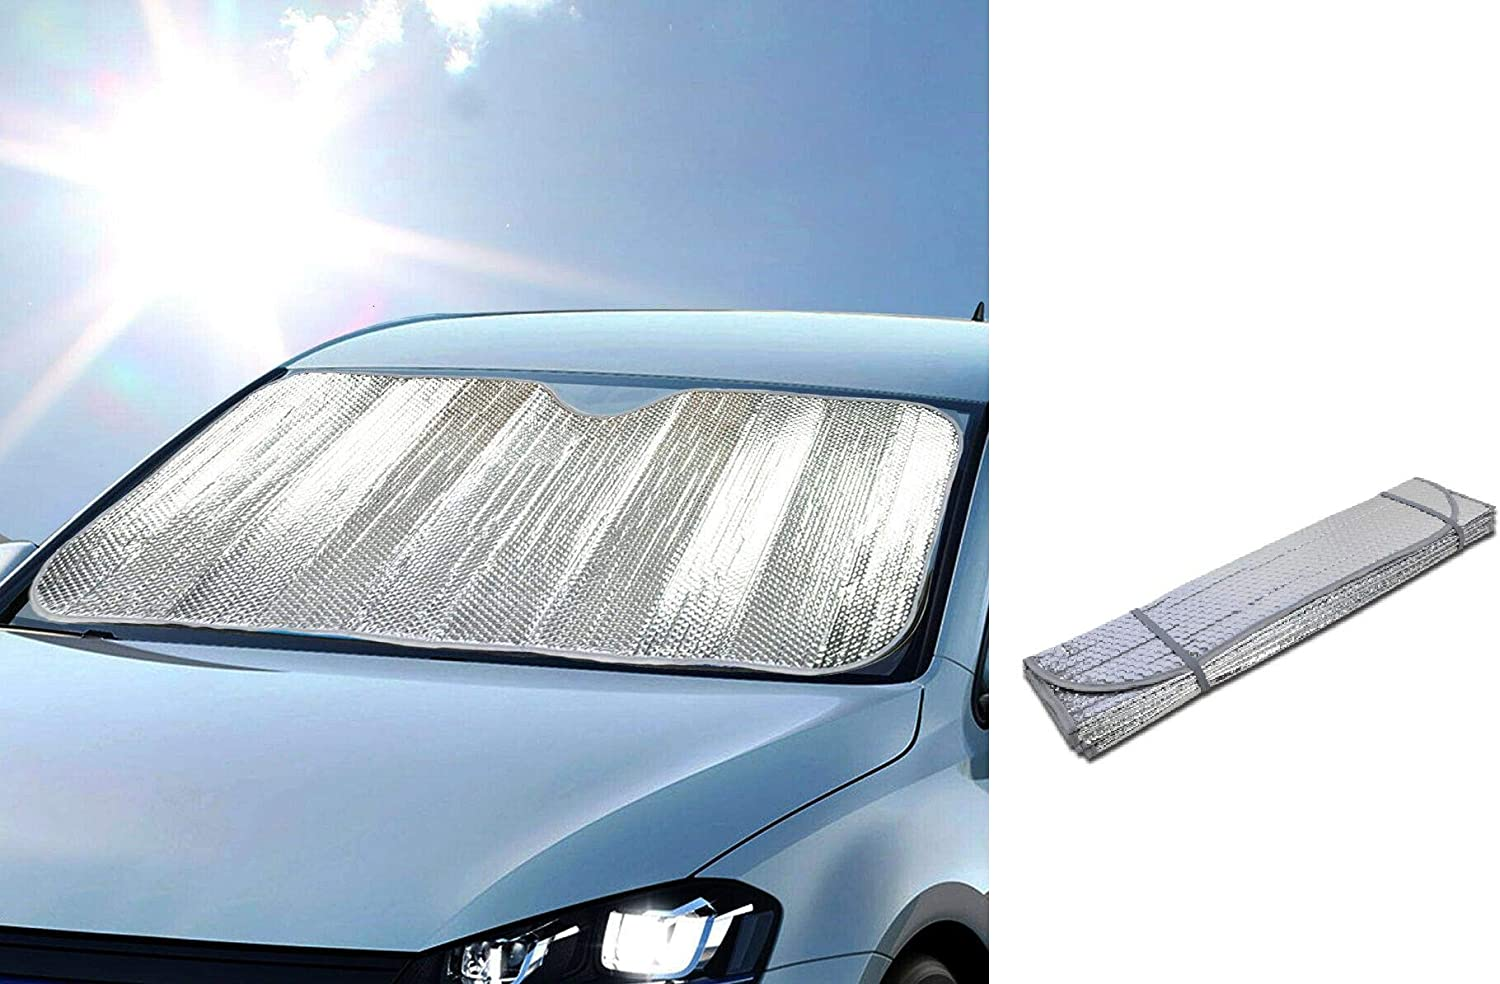 DINY Home /& Style Windshield Sunshade Sun Reflector for Car Foldable UV Ray Reflector Auto Front Window Sun Shade Visor Shield Cover Keeps Vehicle Cool 58 x 23.5